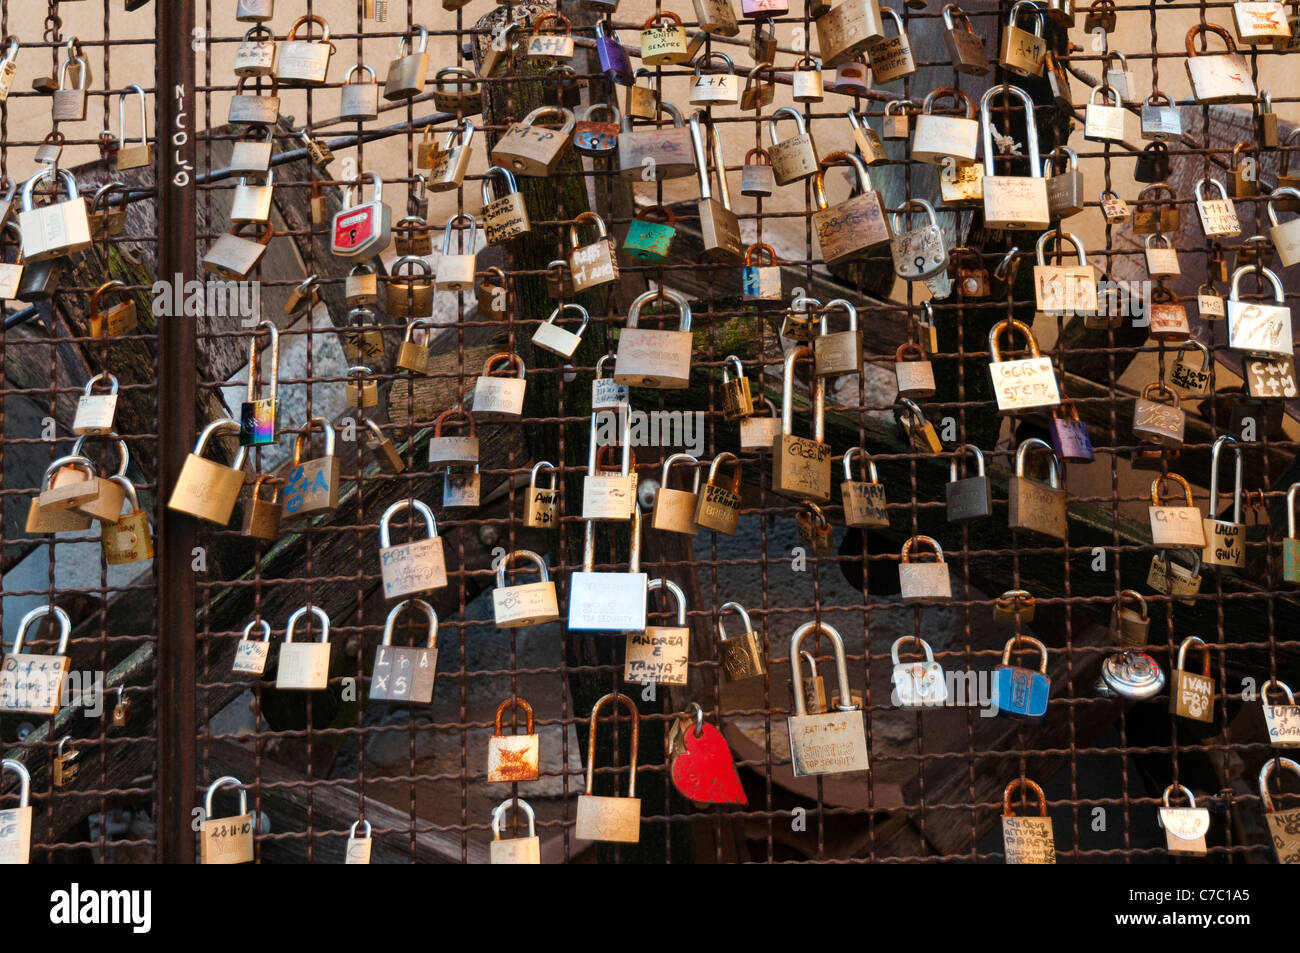 Pad locks attached to a metal grid display messages of everlasting love and commitment, Borghetto Italy - Stock Image